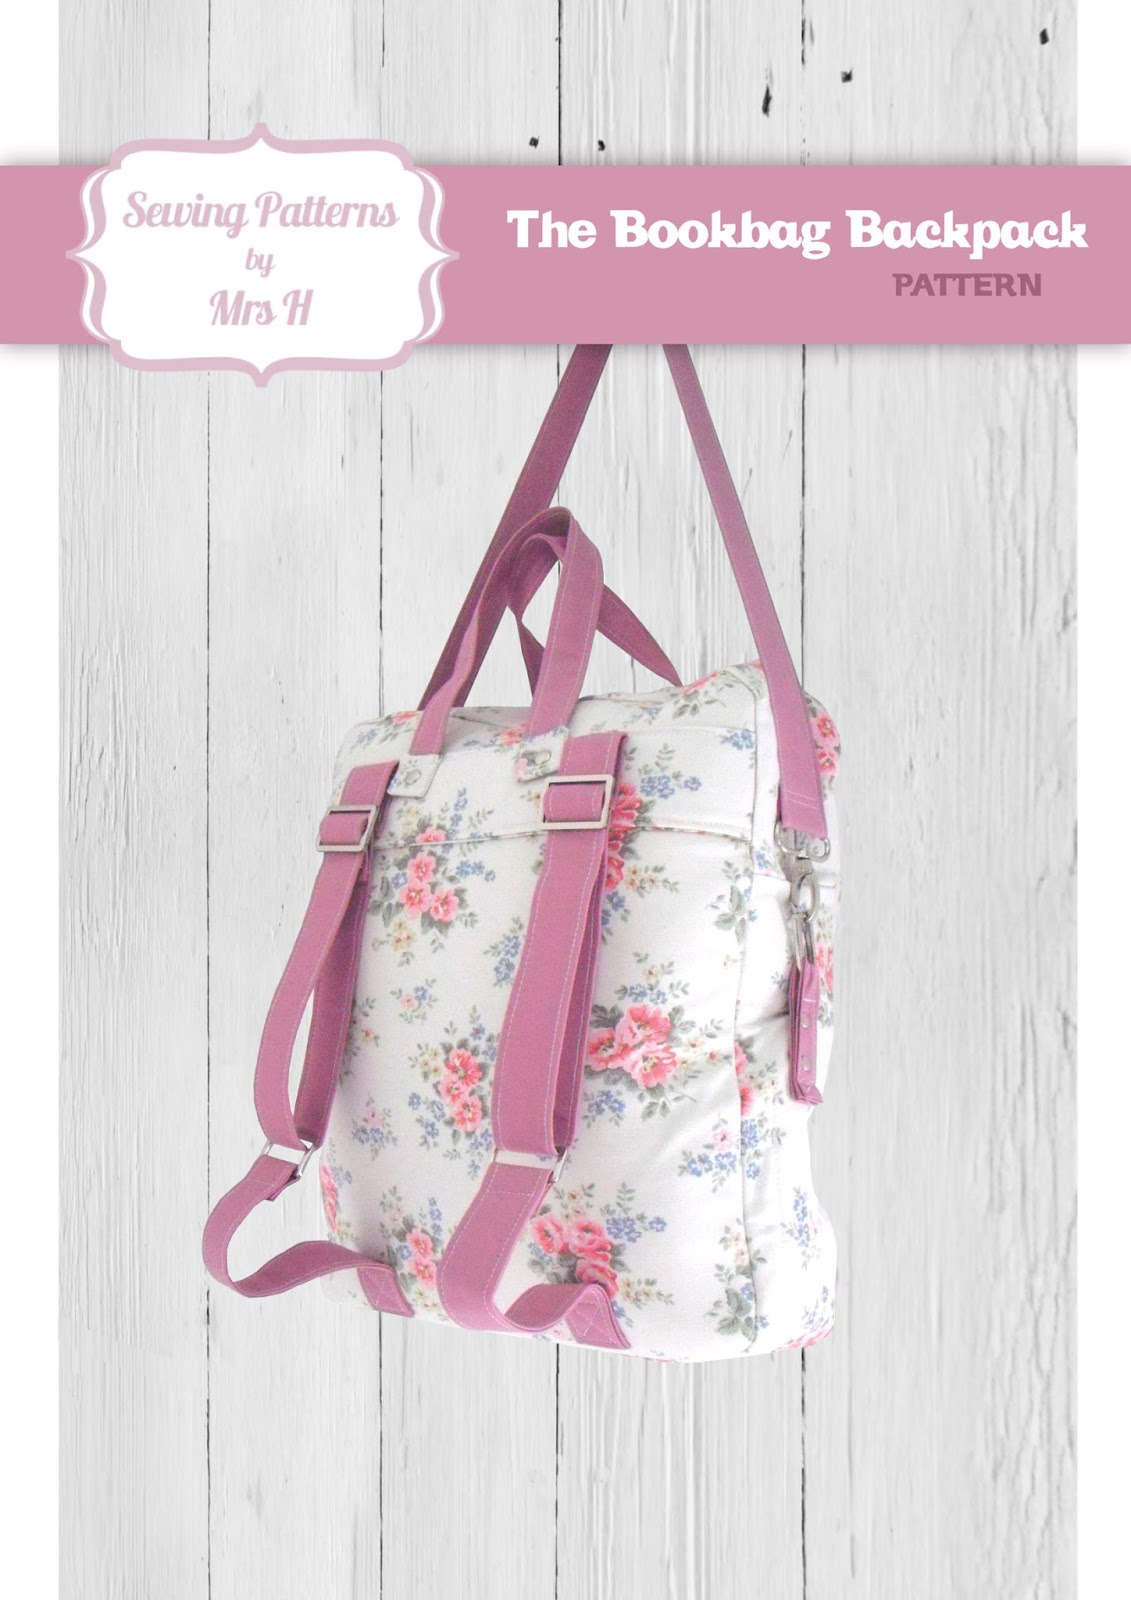 Mrs H - the blog: The Bookbag Backpack